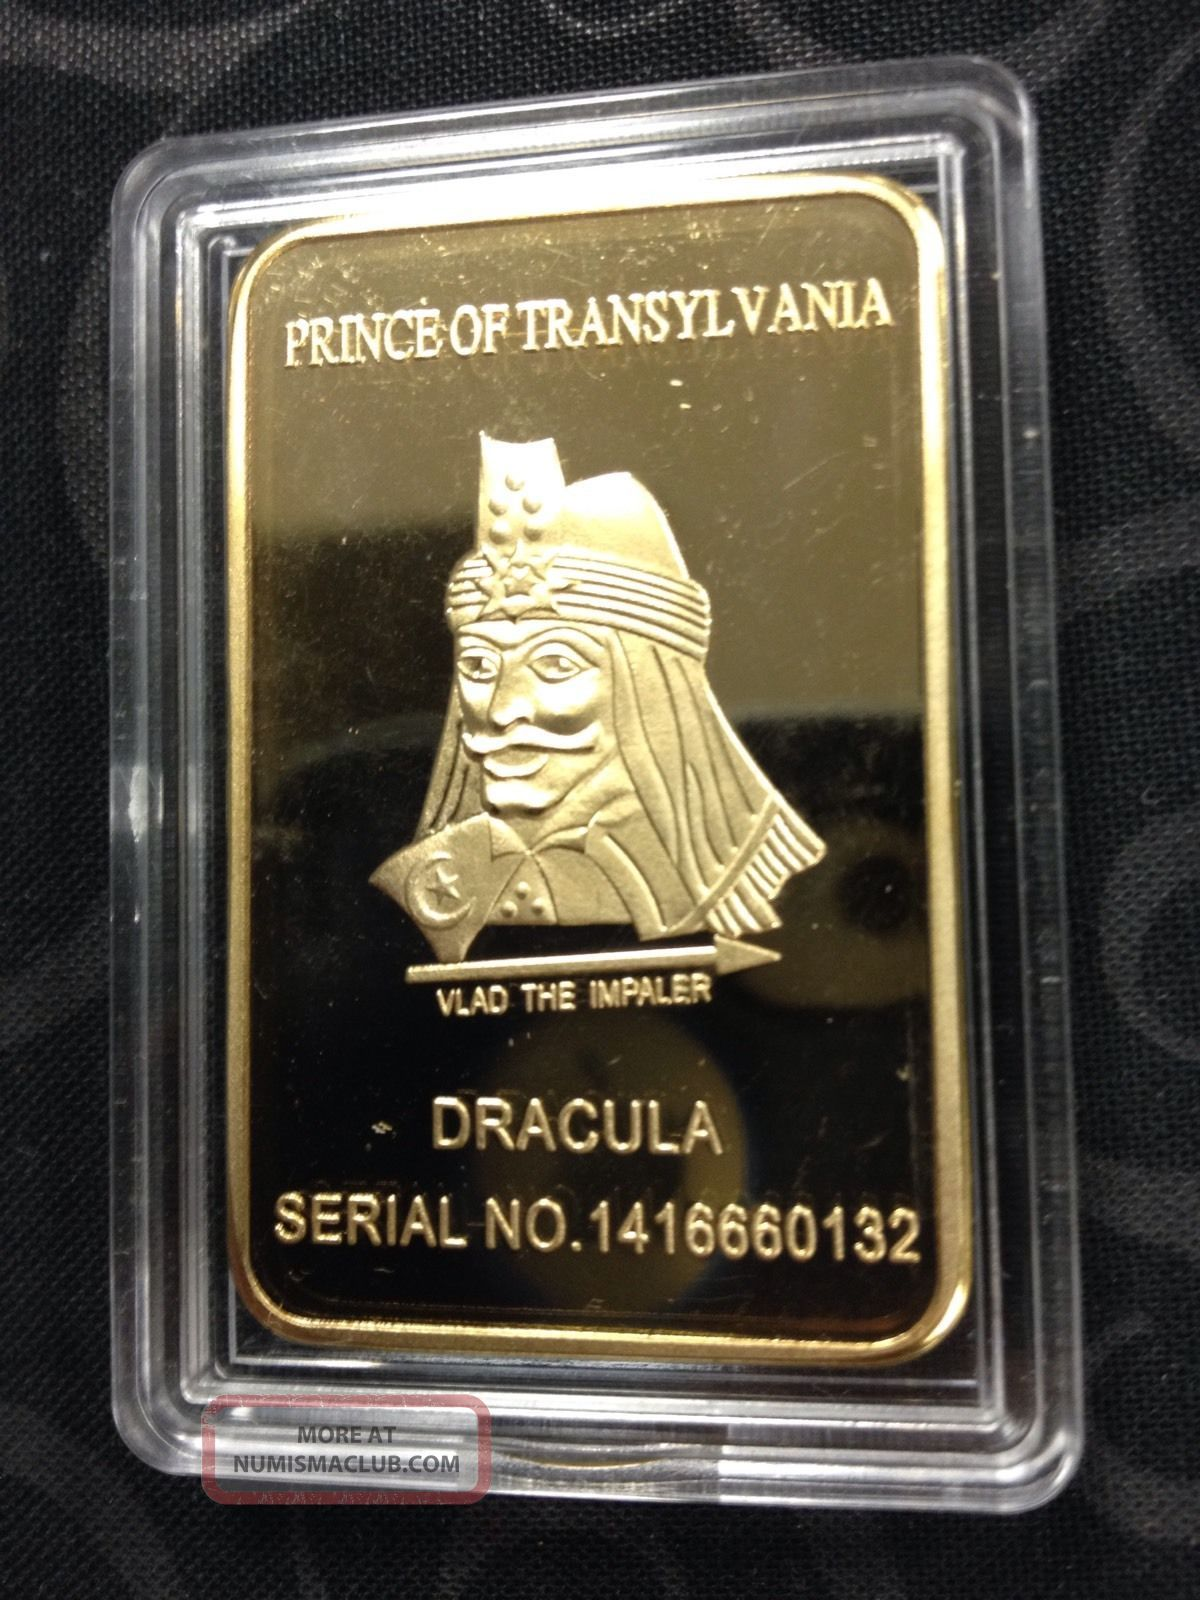 The Castle Dracula Prince Of Transyl Vania One Troy